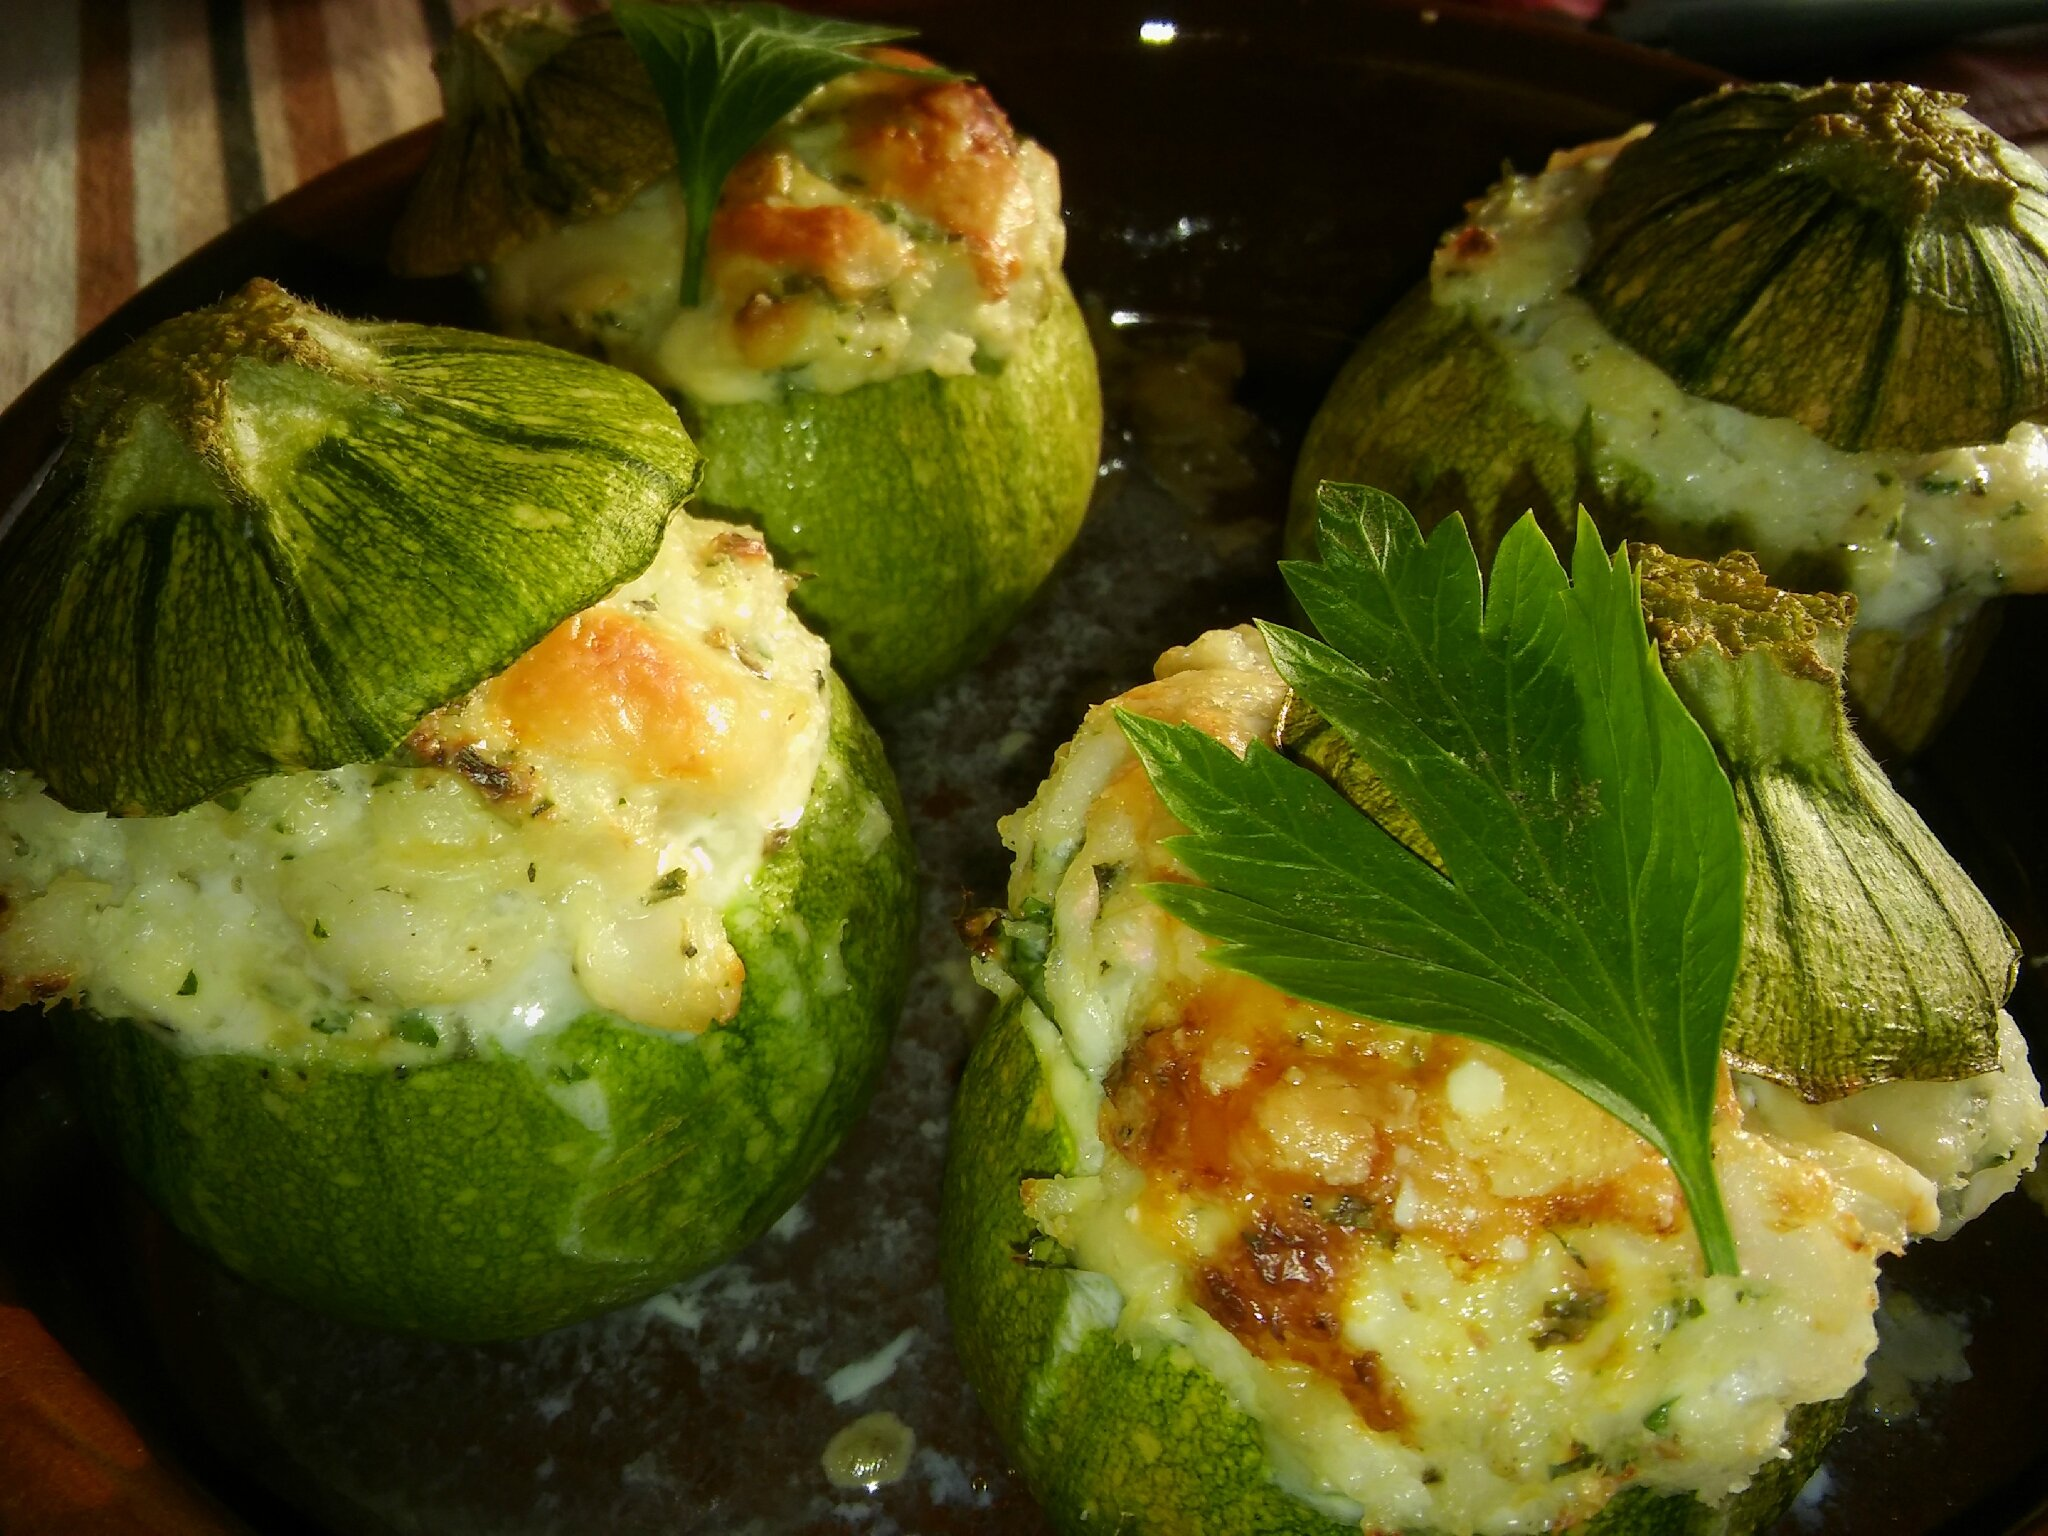 Courgettes rondes farcies au cabillaud